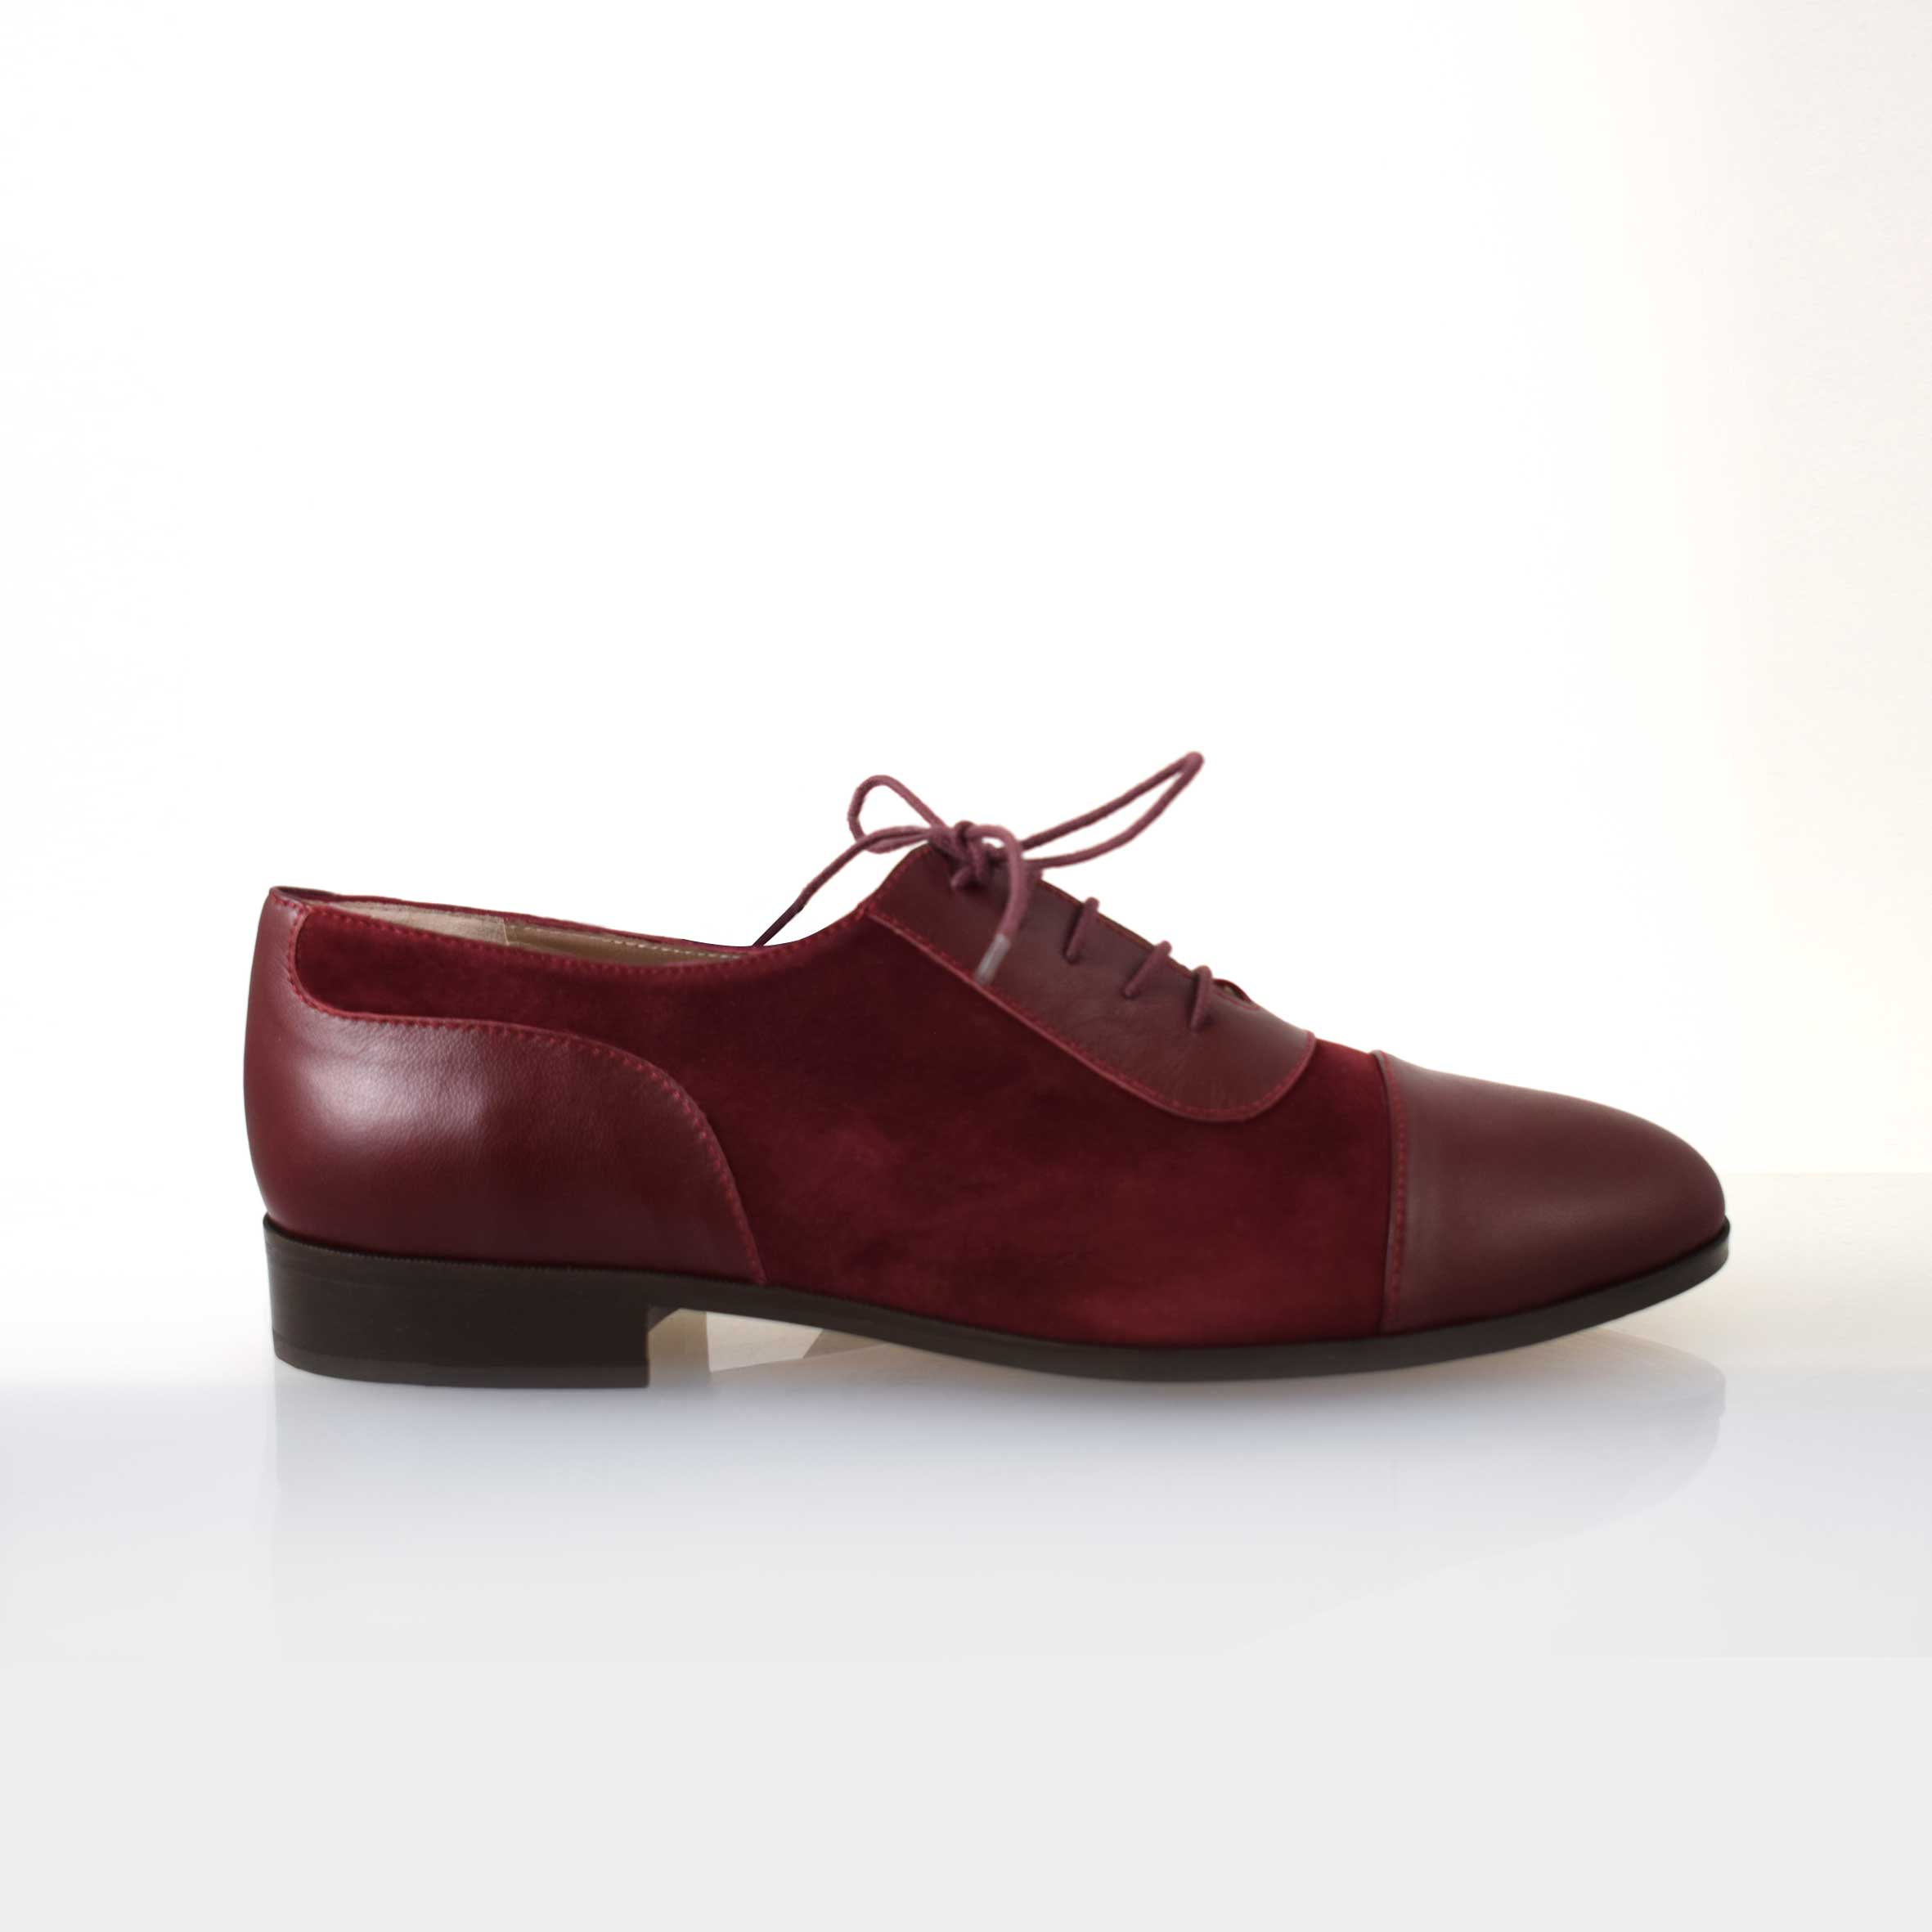 Herrentanzschuh Swingz Royal